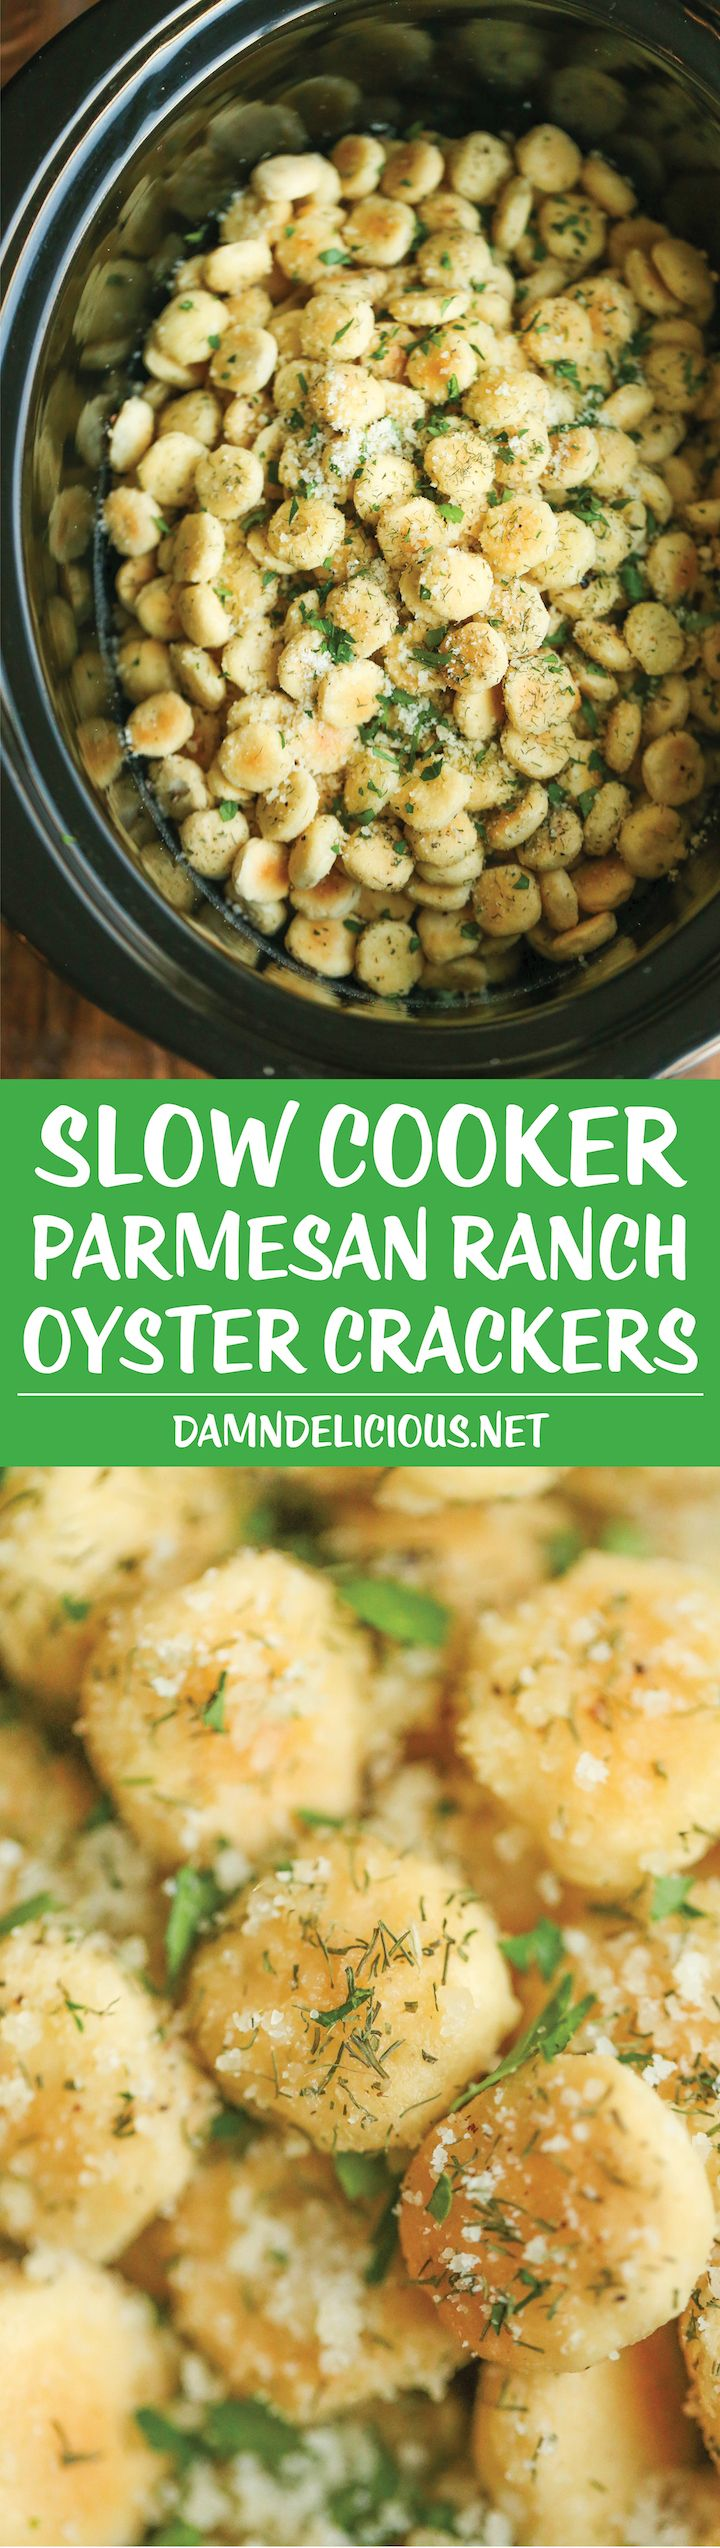 Slow Cooker Parmesan Ranch Oyster Crackers